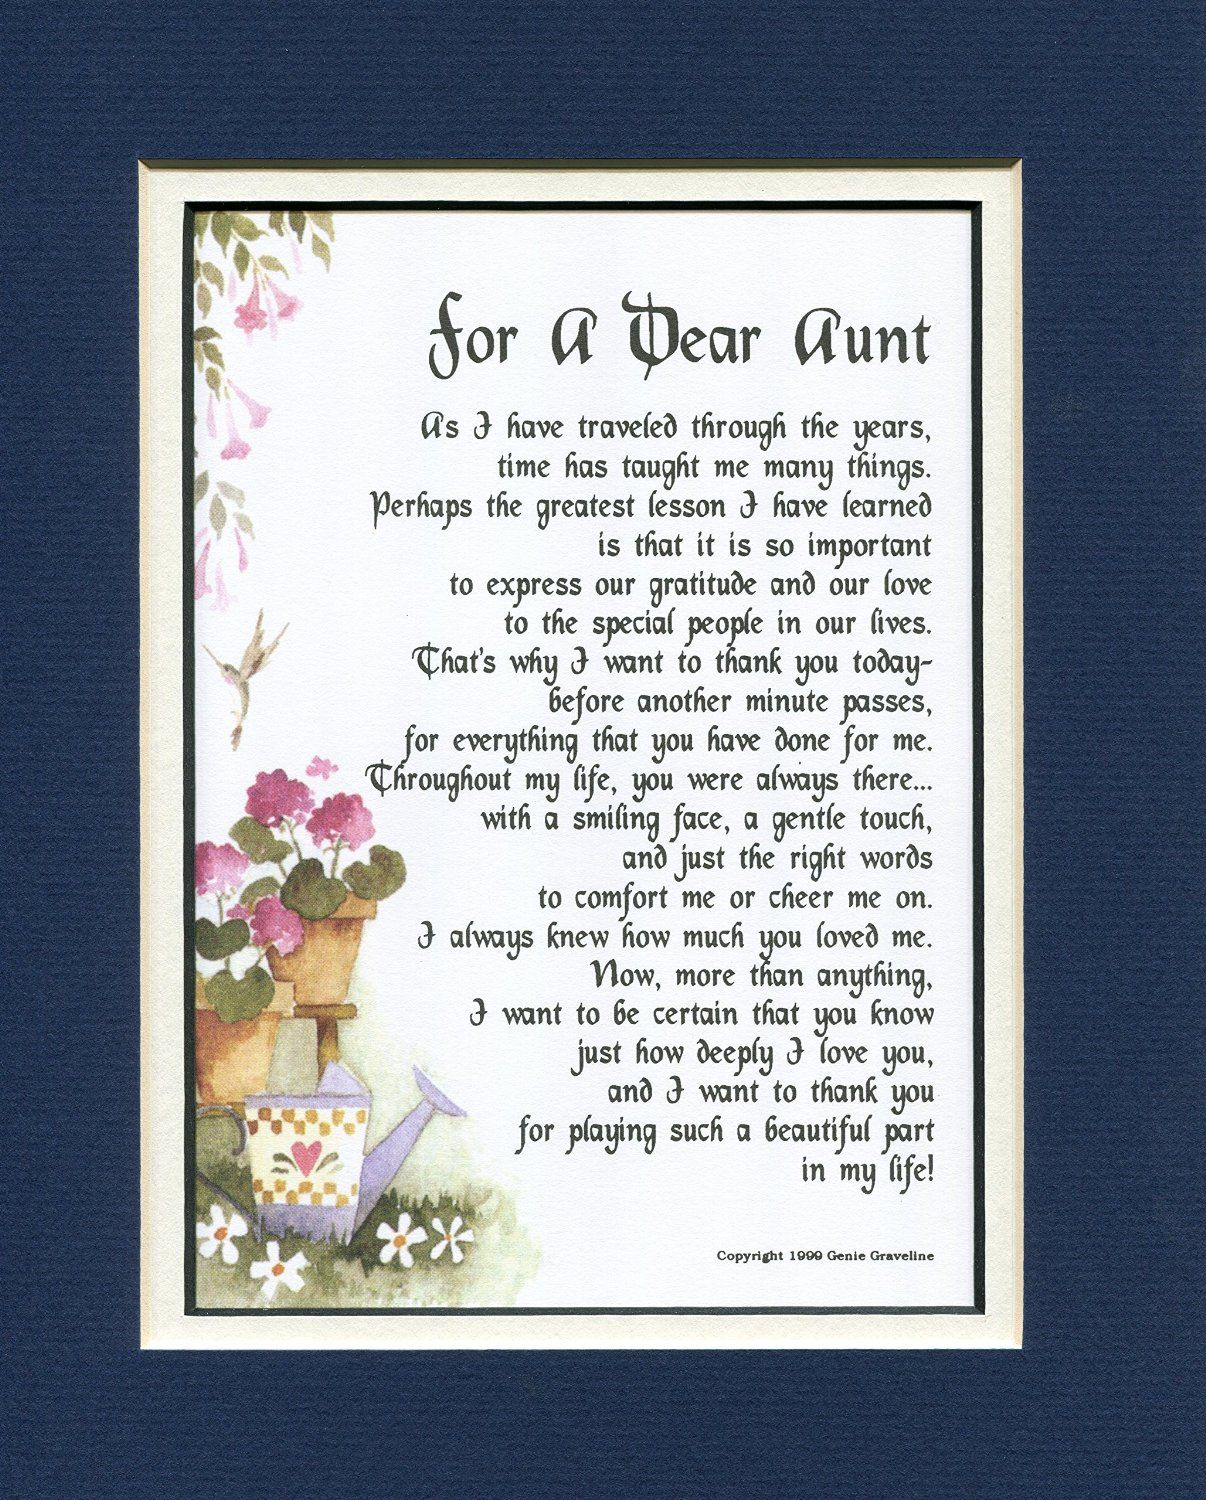 Gifts For Aunts, #68, Touching 8x10 Poem